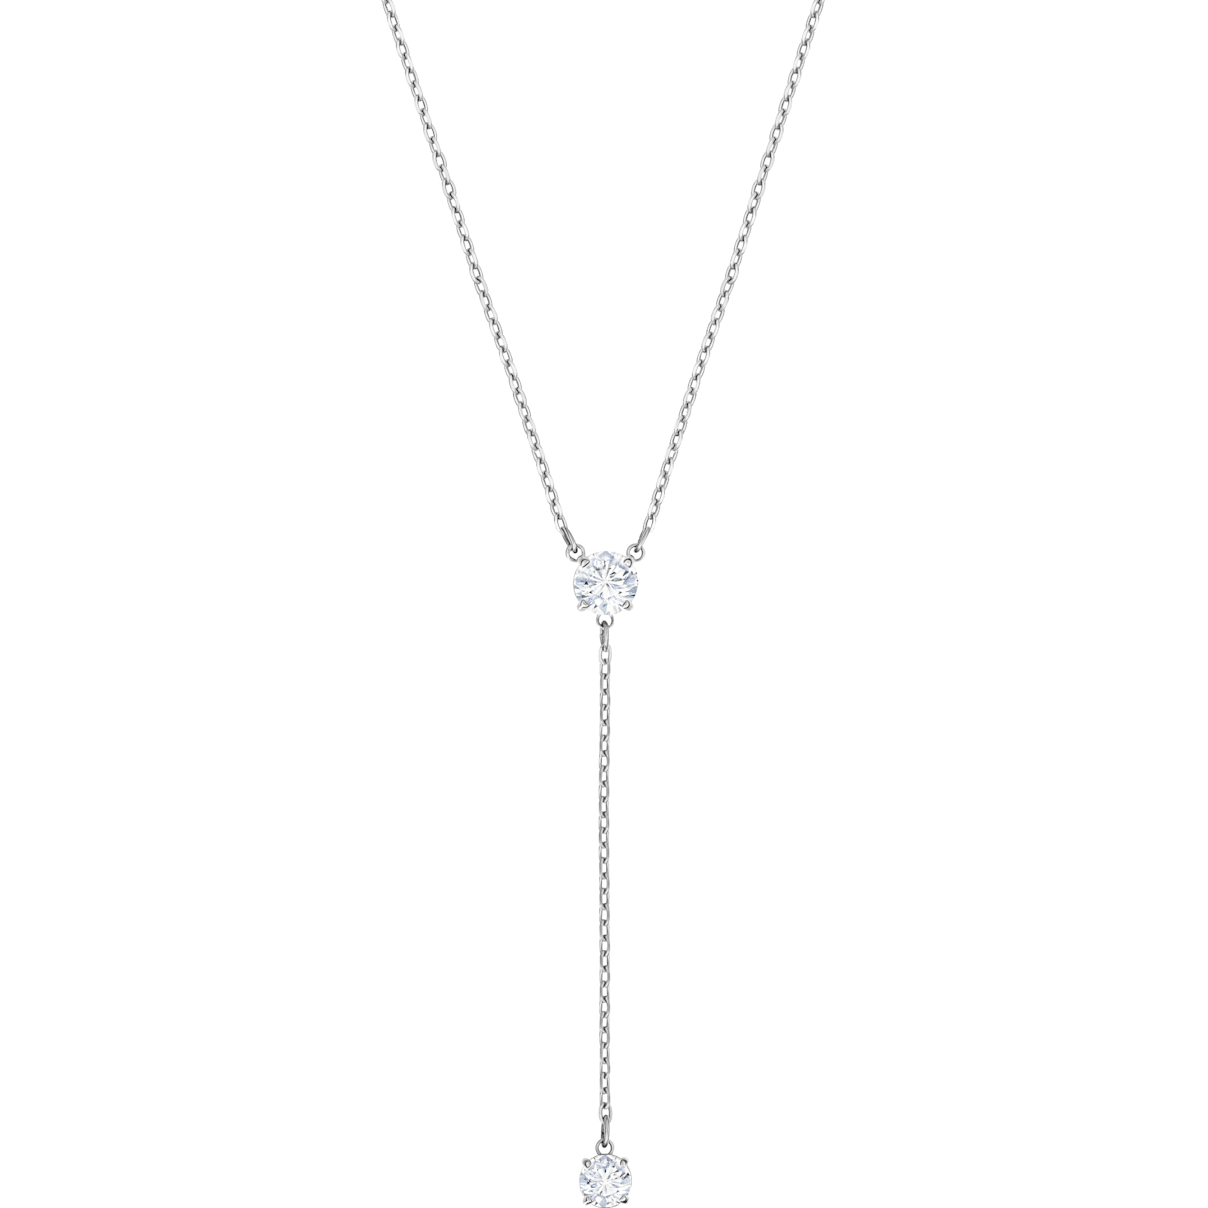 Swarovski Attract Y Necklace, White, Rhodium plated